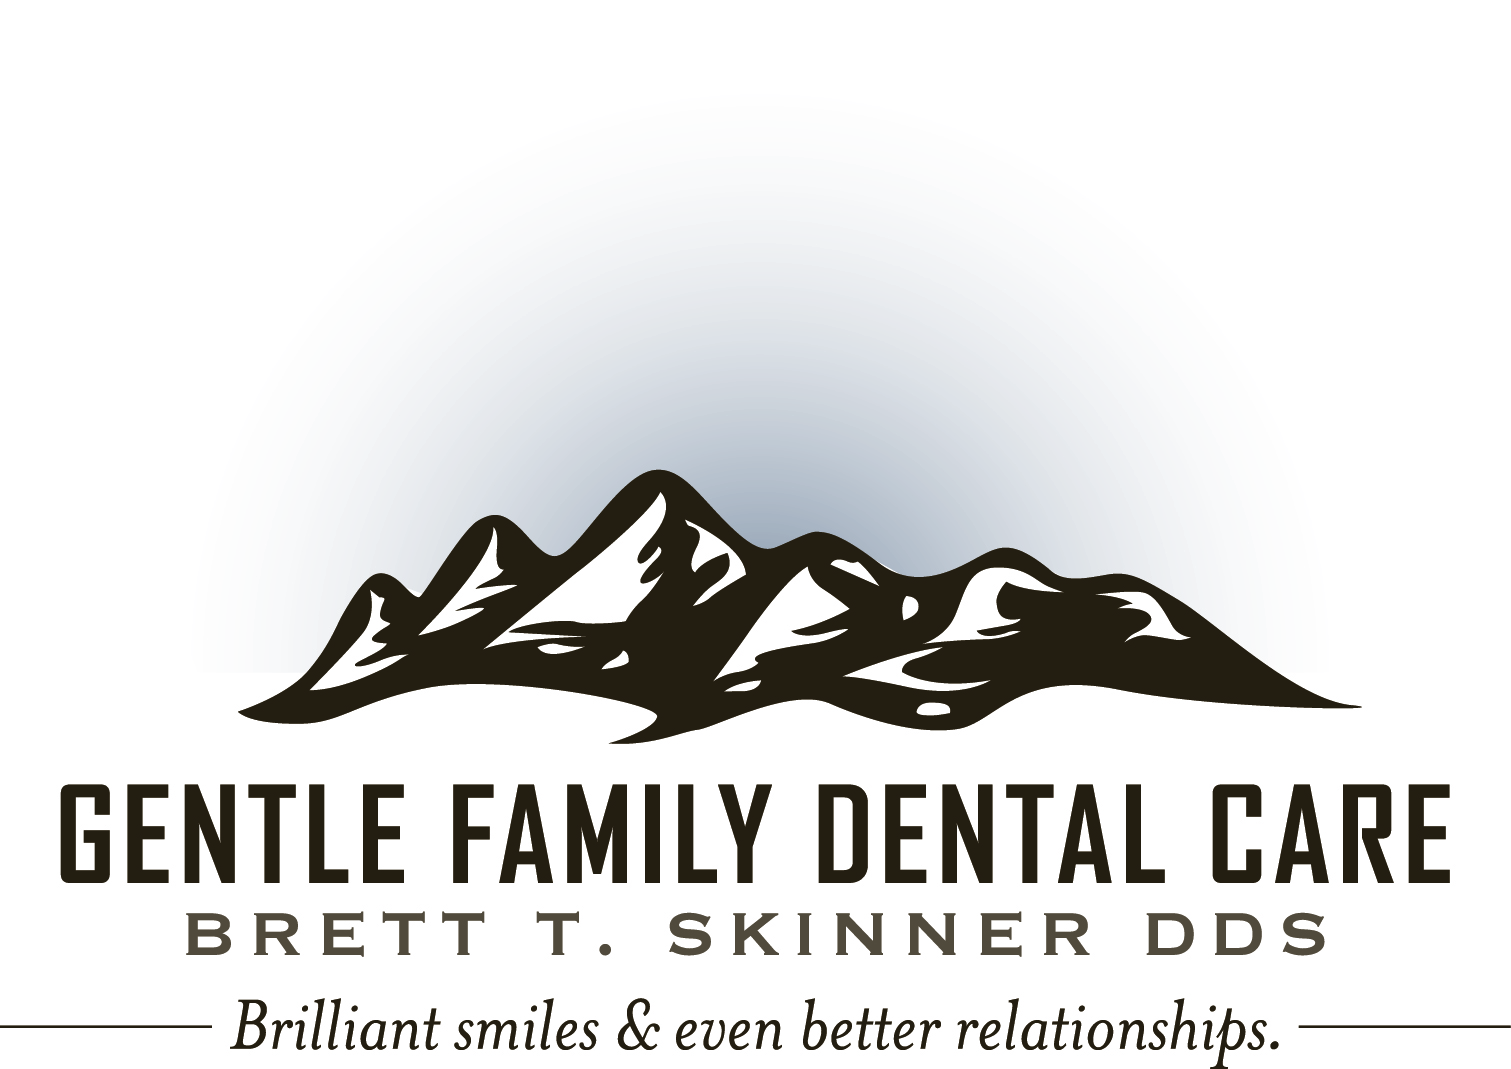 Gentle Family Dental Care